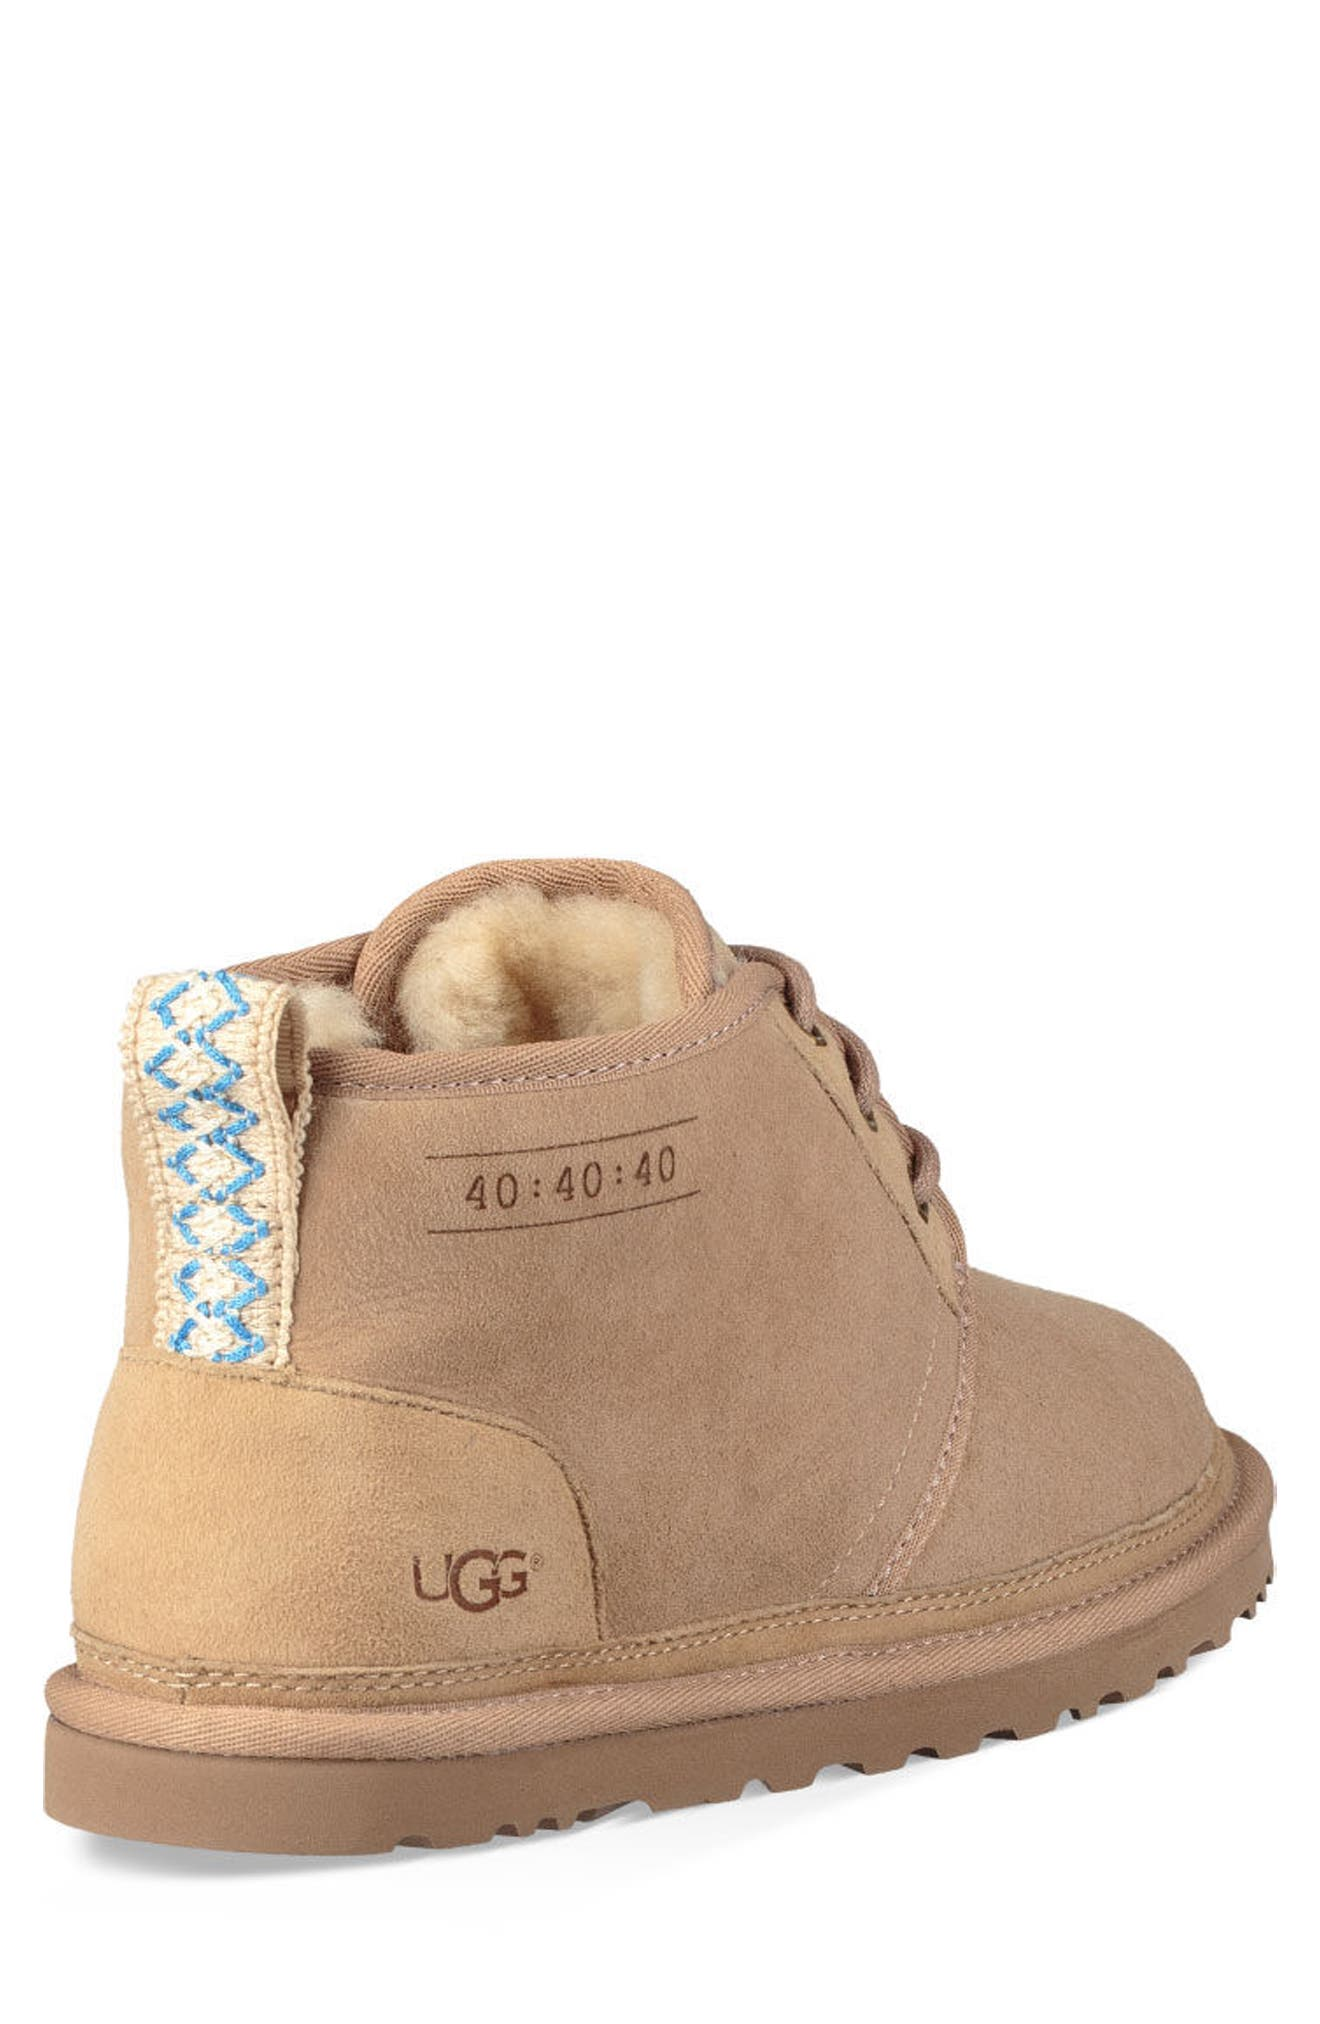 Neumel 40:40:40 Anniversary Genuine Shearling Boot,                             Alternate thumbnail 2, color,                             SAND